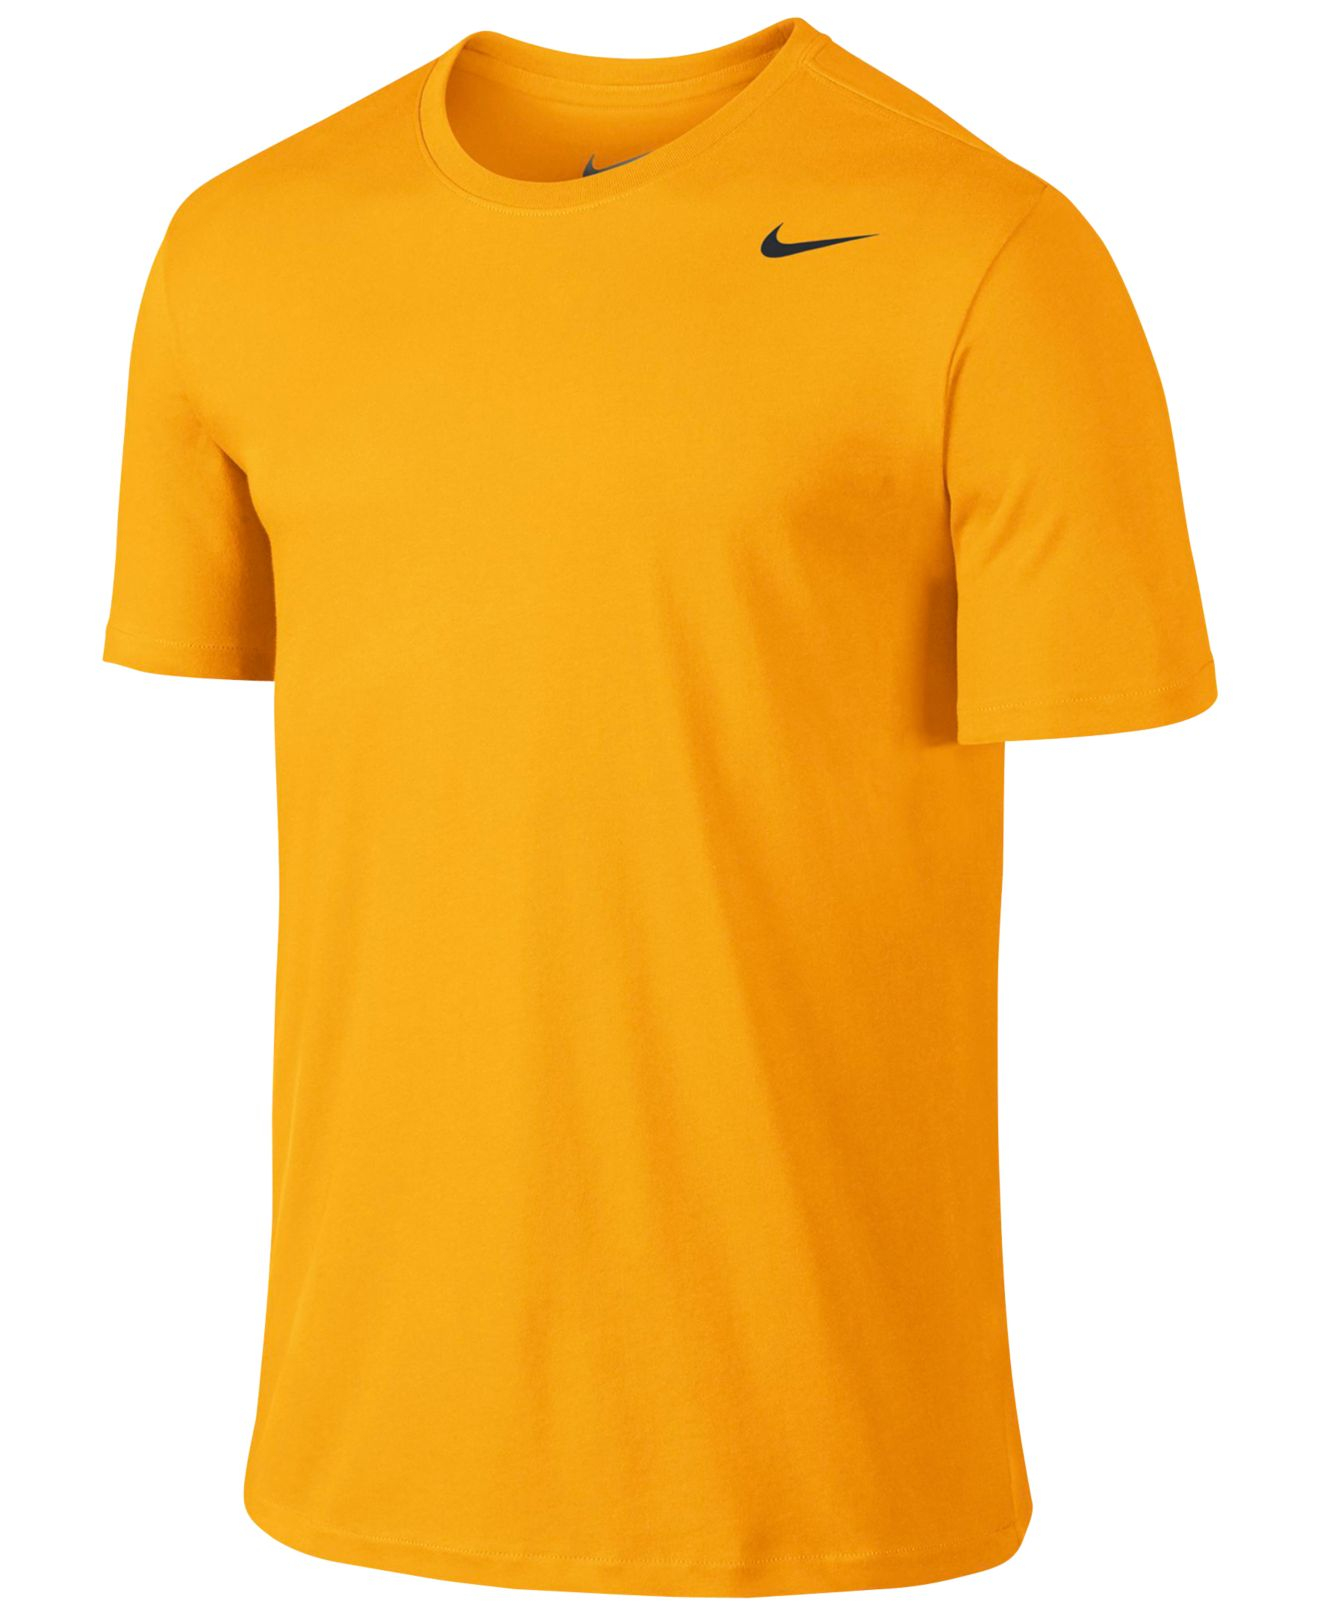 nike dri fit cotton short sleeve 2 0 t shirt in metallic